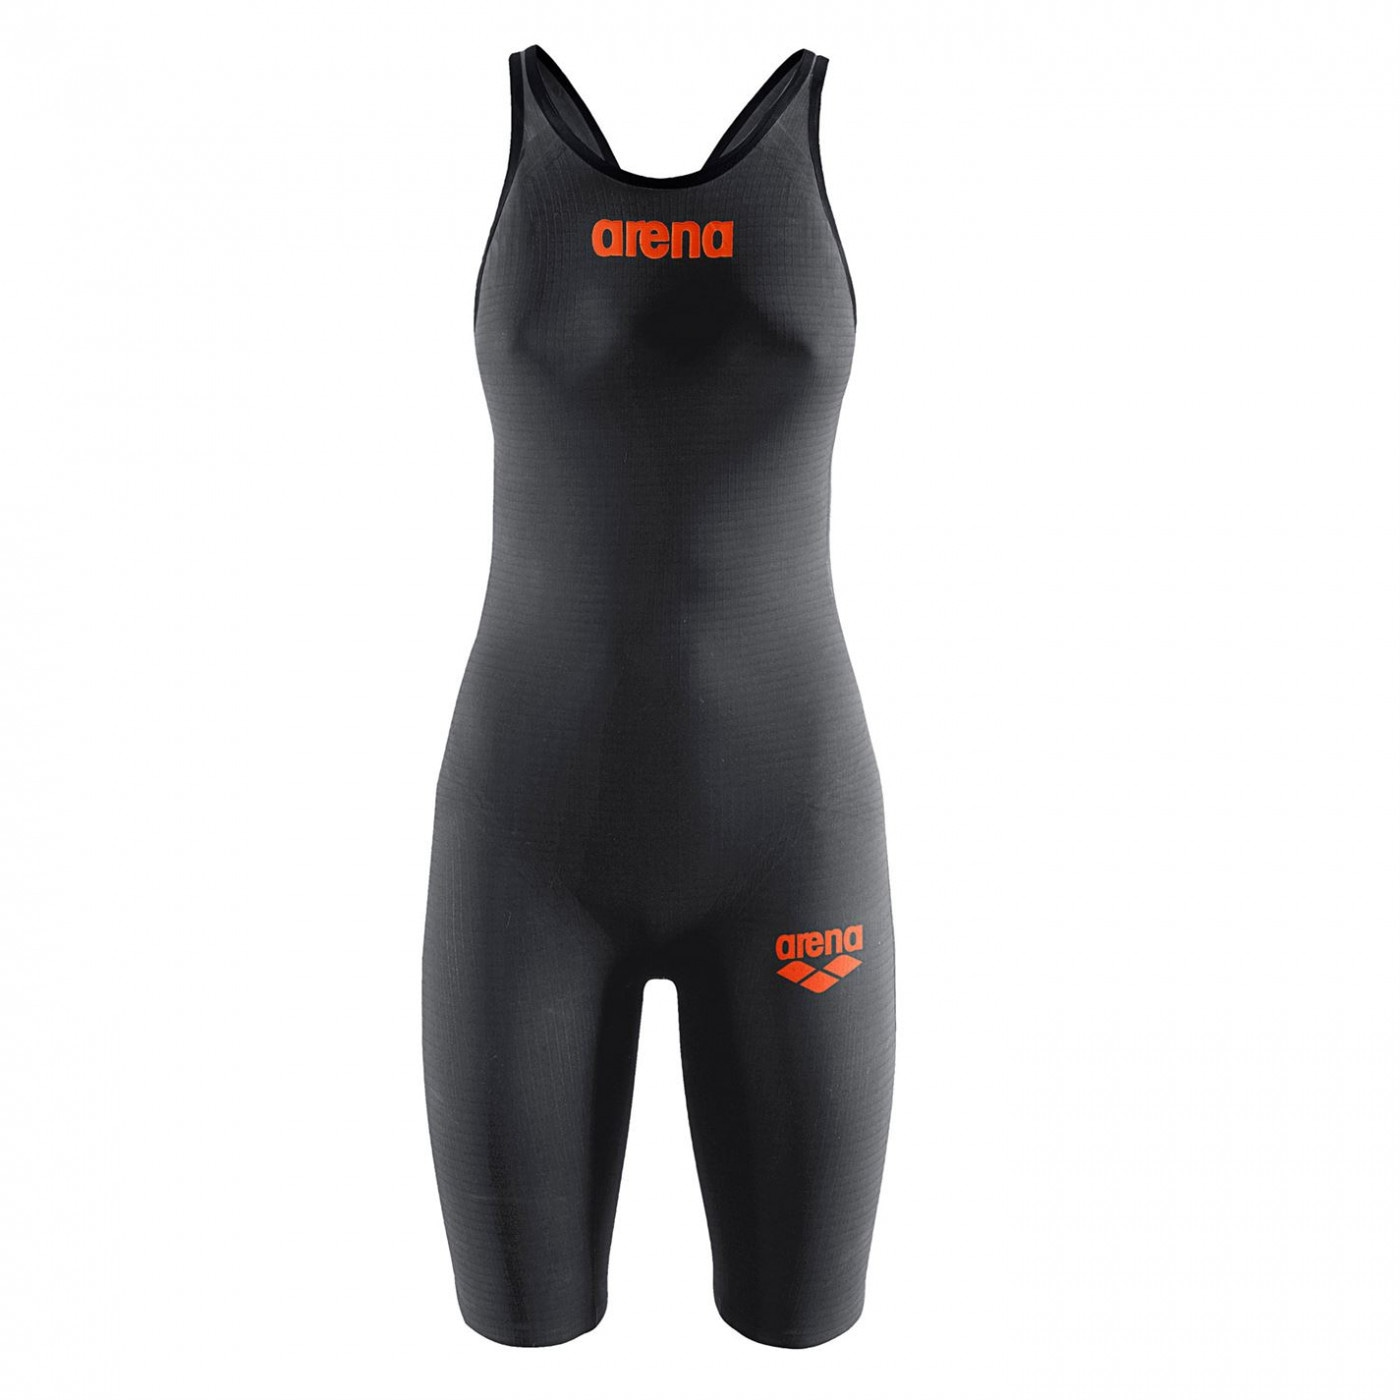 Arena Carbon Mark 2 Open Back Kneeskin Girls